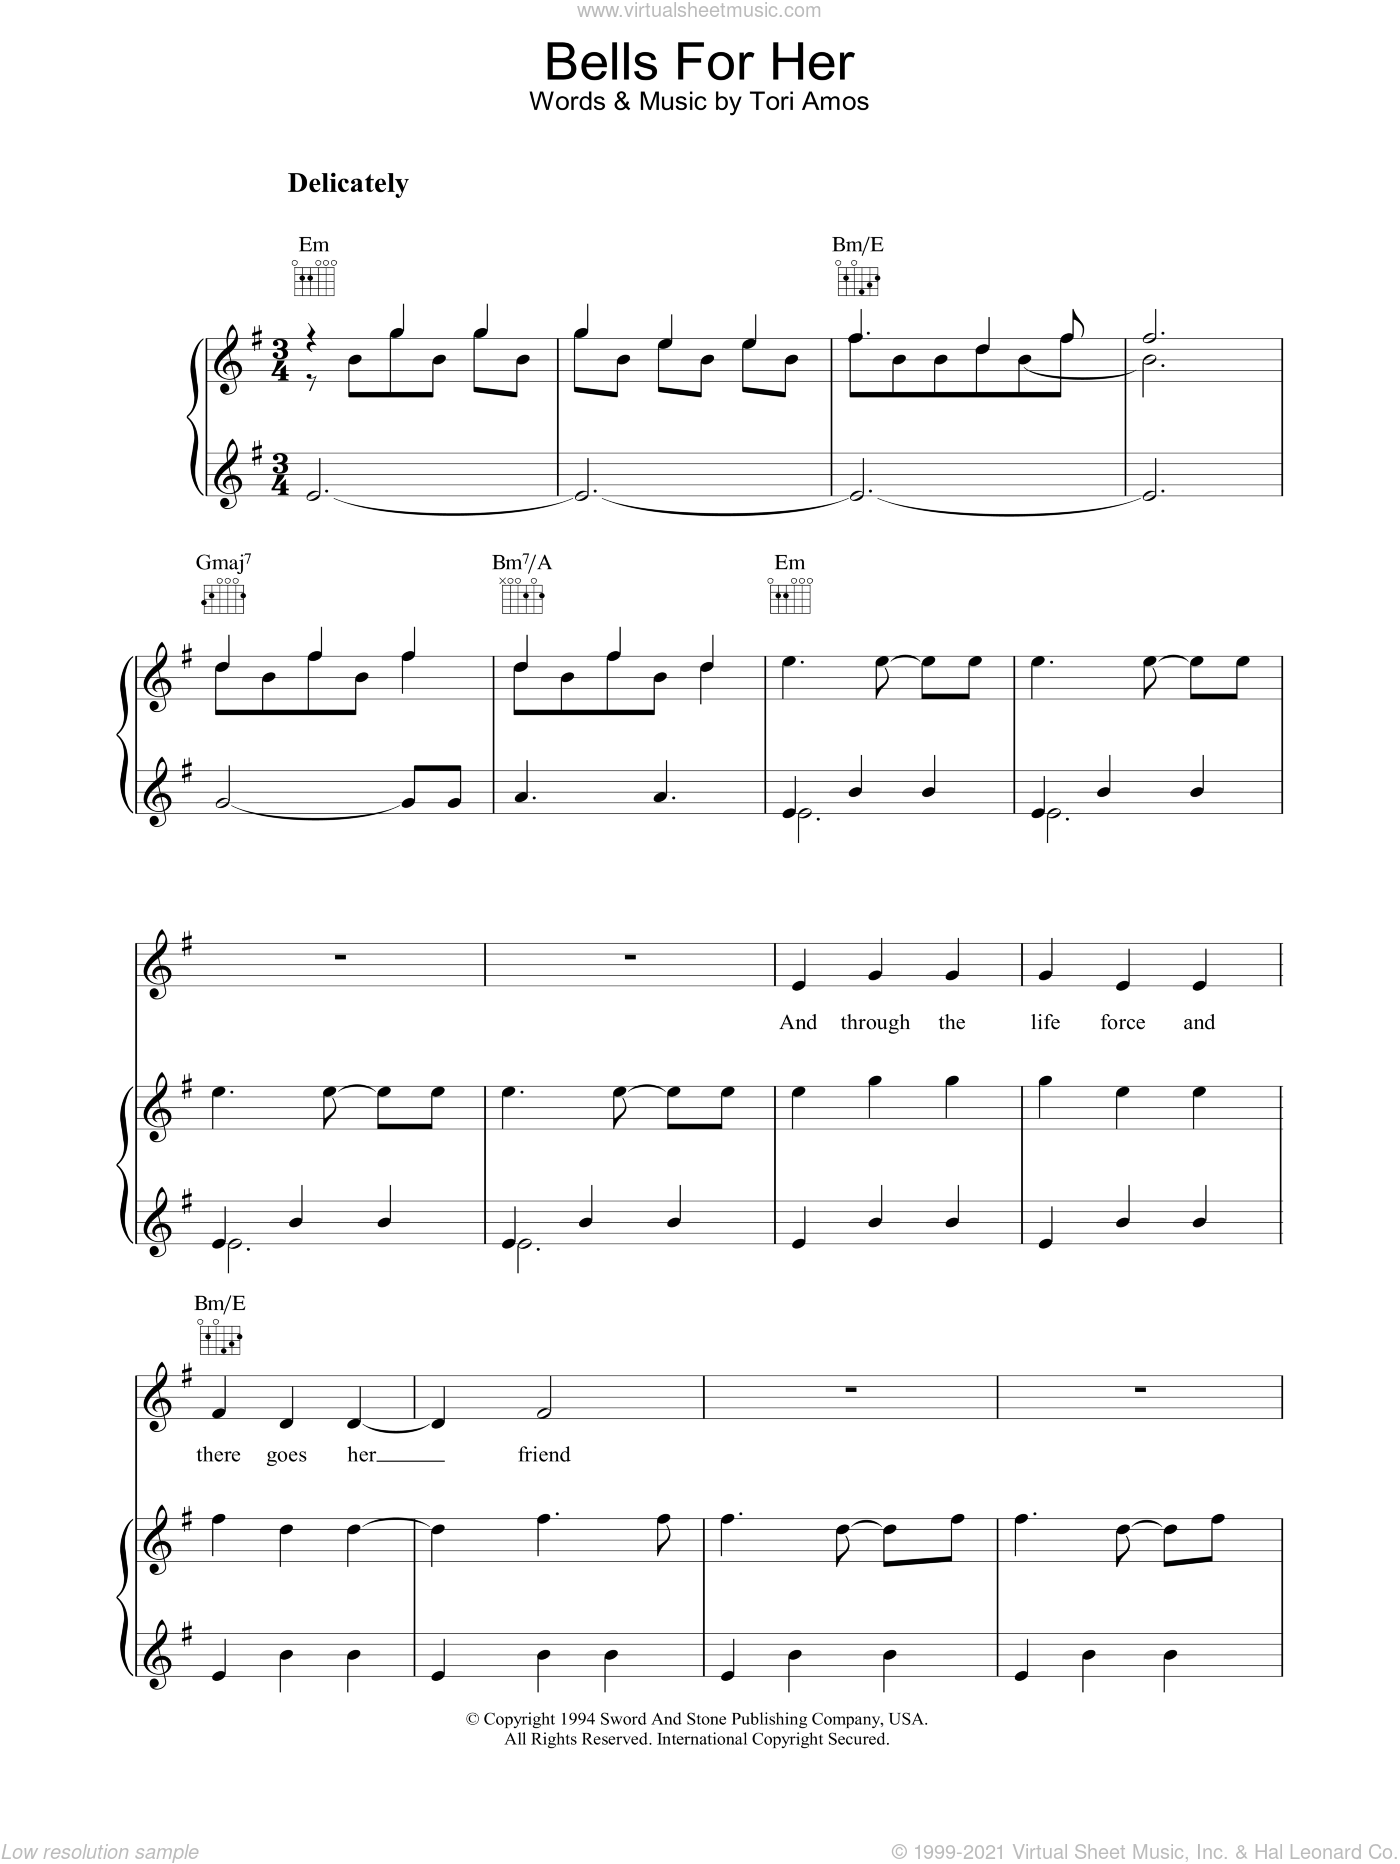 Bells For Her sheet music for voice, piano or guitar by Tori Amos